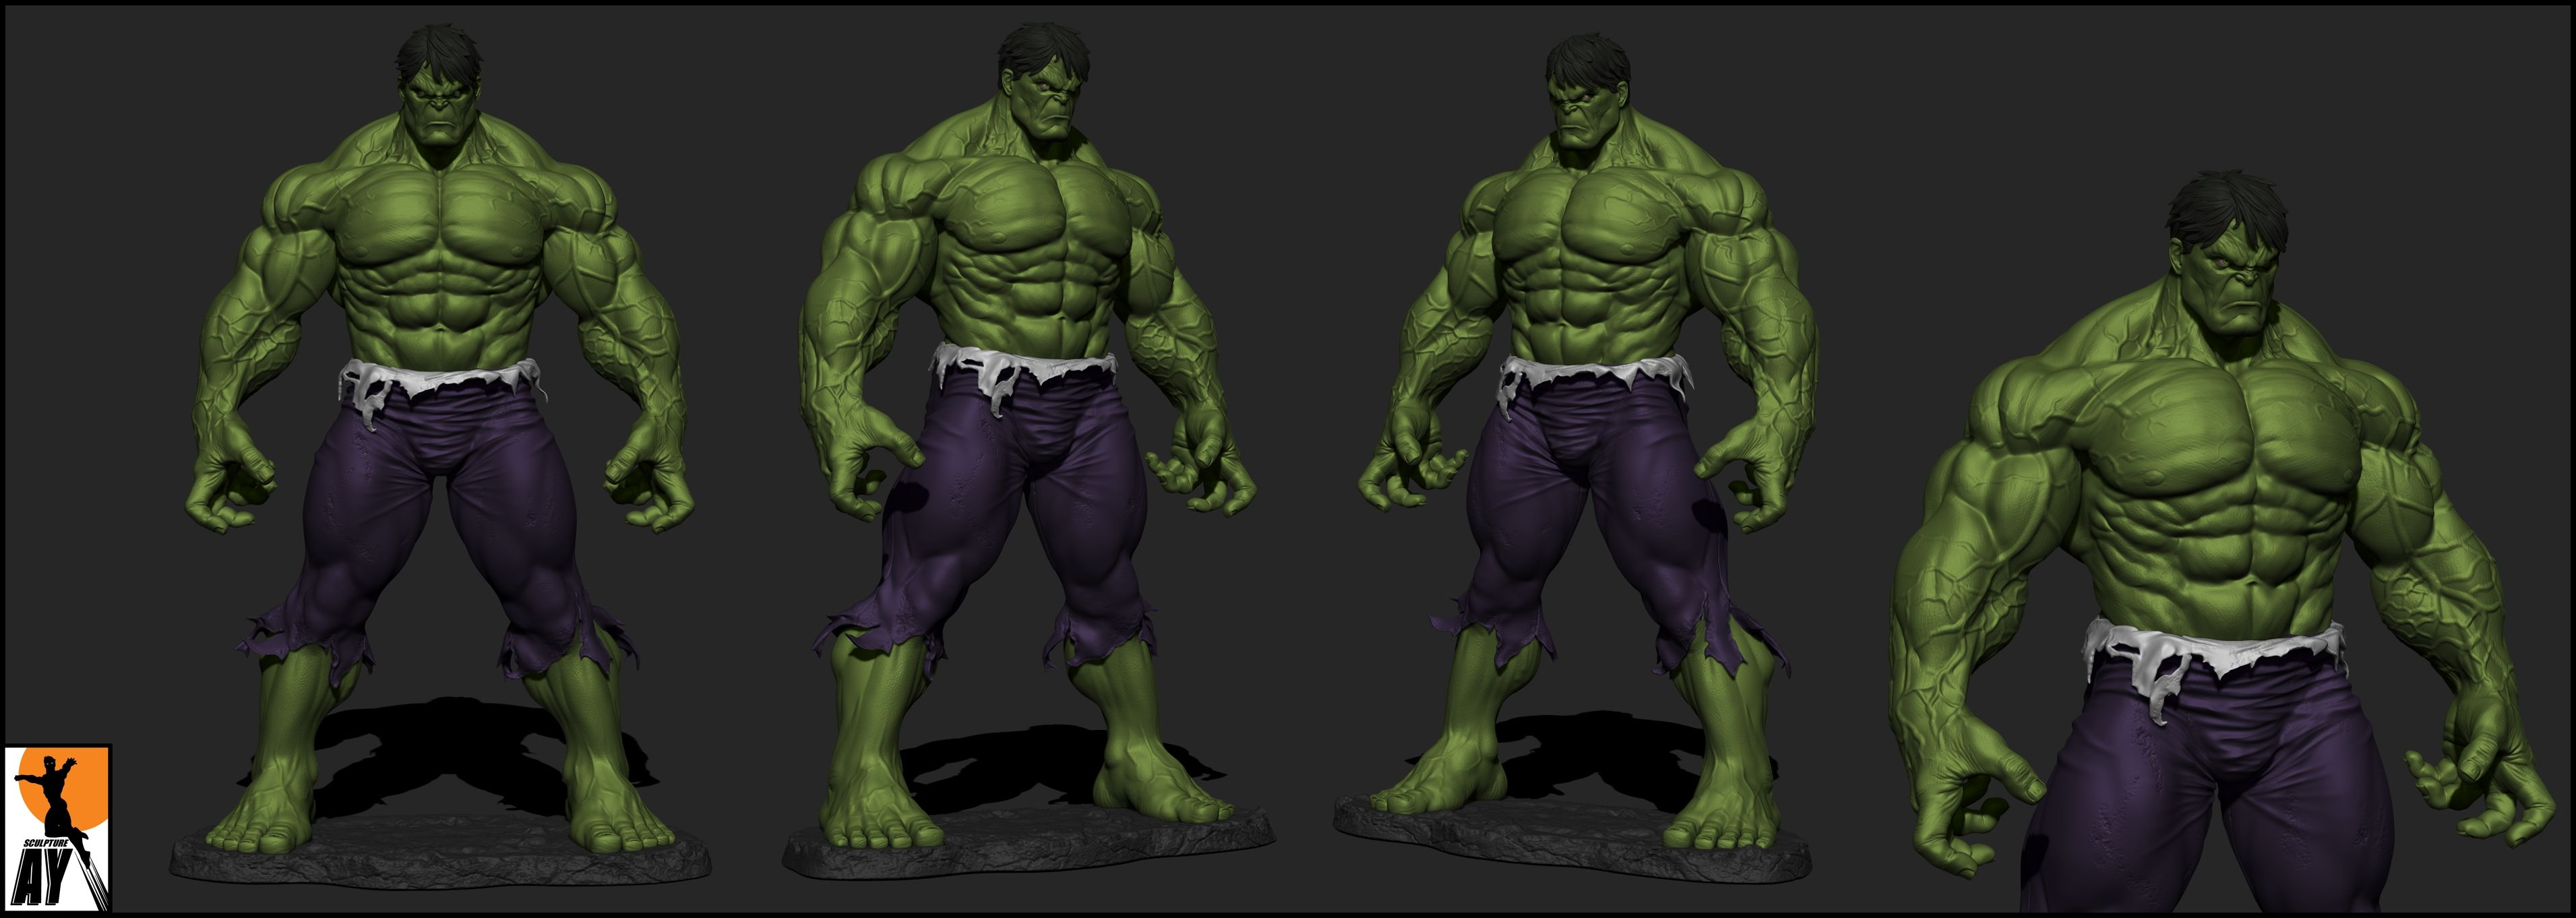 hulk wallpapers free download | wallpapers for desktop | pinterest